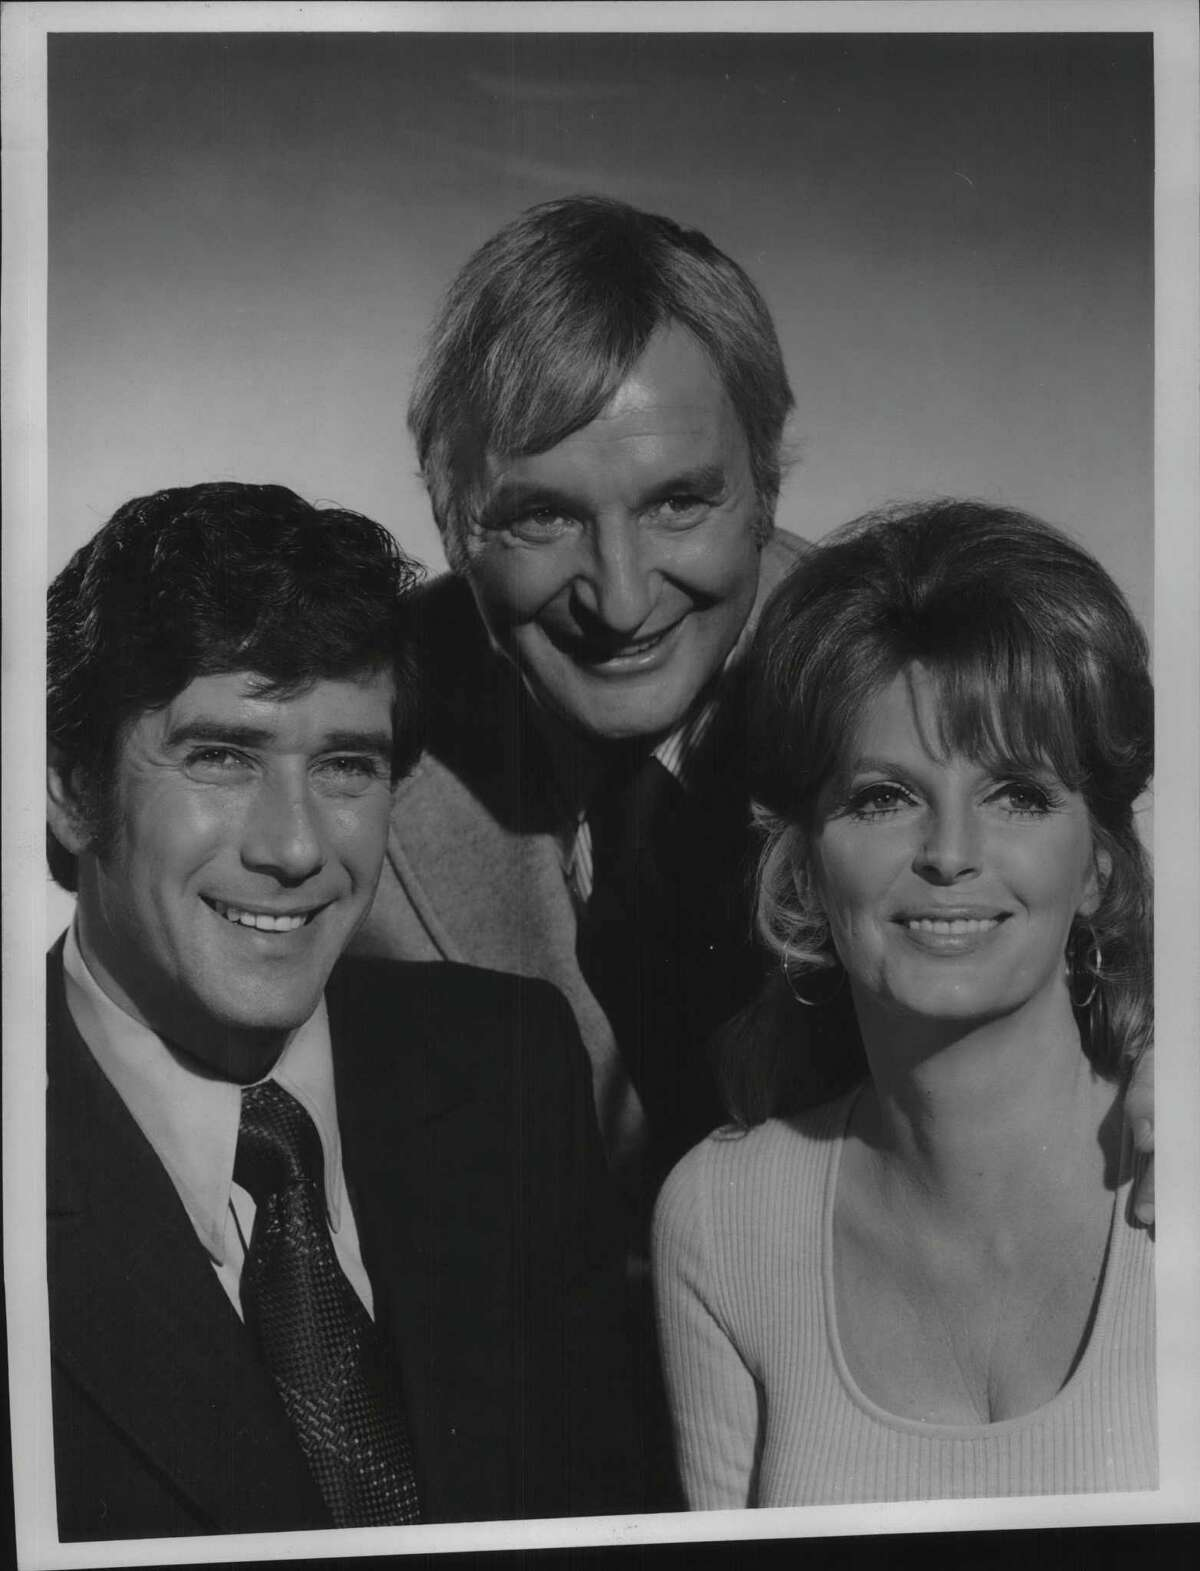 Ita€™s time for some Emergency! In January 1972, Robert Fuller, left, as Dr. Kelly Brackett, head of Rampart Hospitala€™s Emergency Division; Bobby Troup as neurosurgeon Dr. Joe Early and Julie London as head nurse Dixie McCall, starred in a€œWorld Premiere: Emergency!a€ on the a€œNBC World Premiere Movie.a€ The movie, made for first time viewing on TV, was forerunner of the series a€œEmergency!a€ that premiered that Jan. 22. Worth noting: Fuller was born in Troy in 1933 as Leonard Leroy Lee, and grew up in Florida, according to IMDb.com (Times Union Archive)